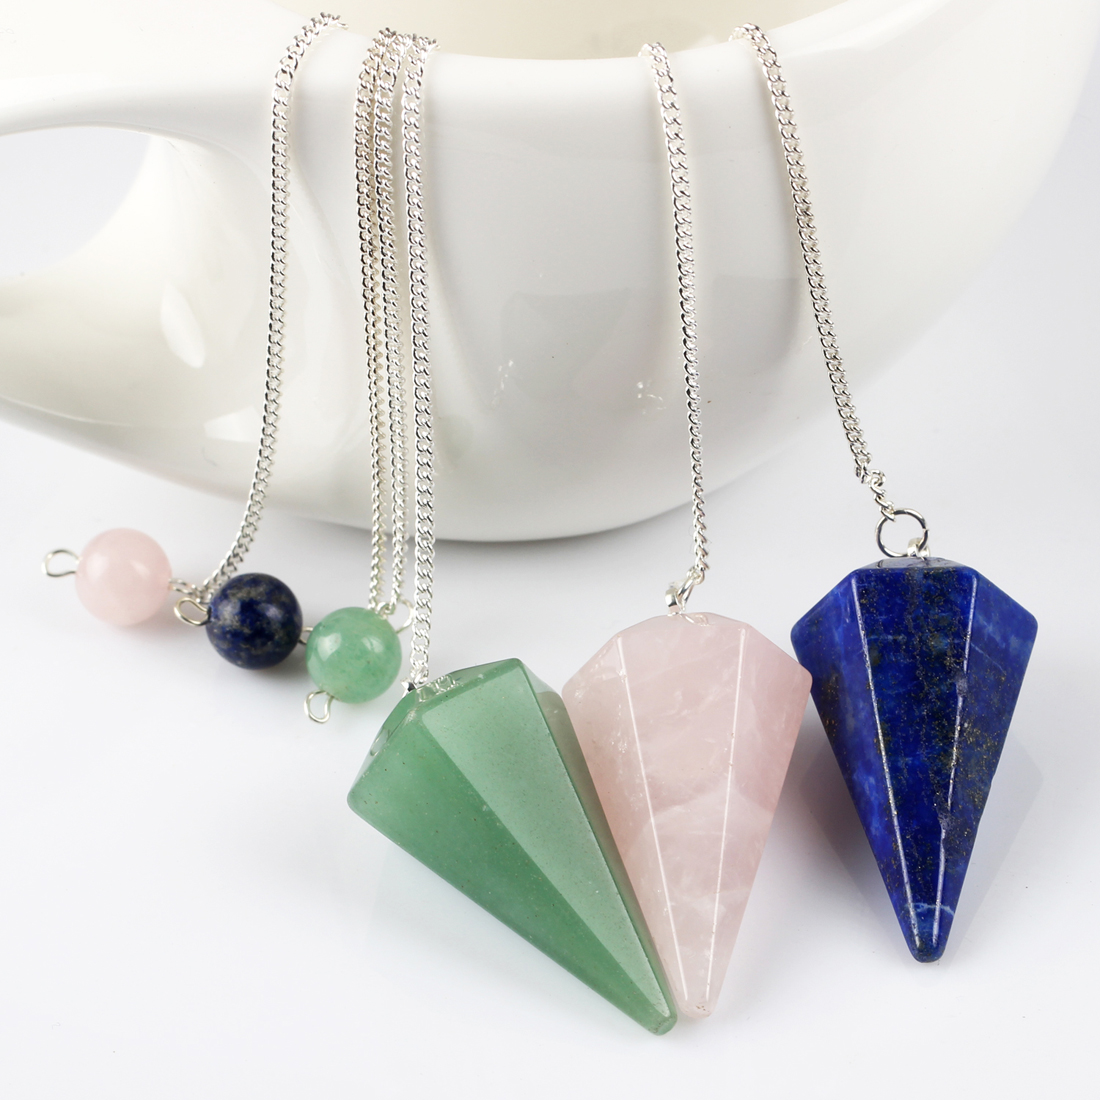 3pcs Natural Quartz Lapis Green Aventurine Crystal Pendulum Amulet Healing Pendants Meditation Reiki Beads Hexagonal Face Stone